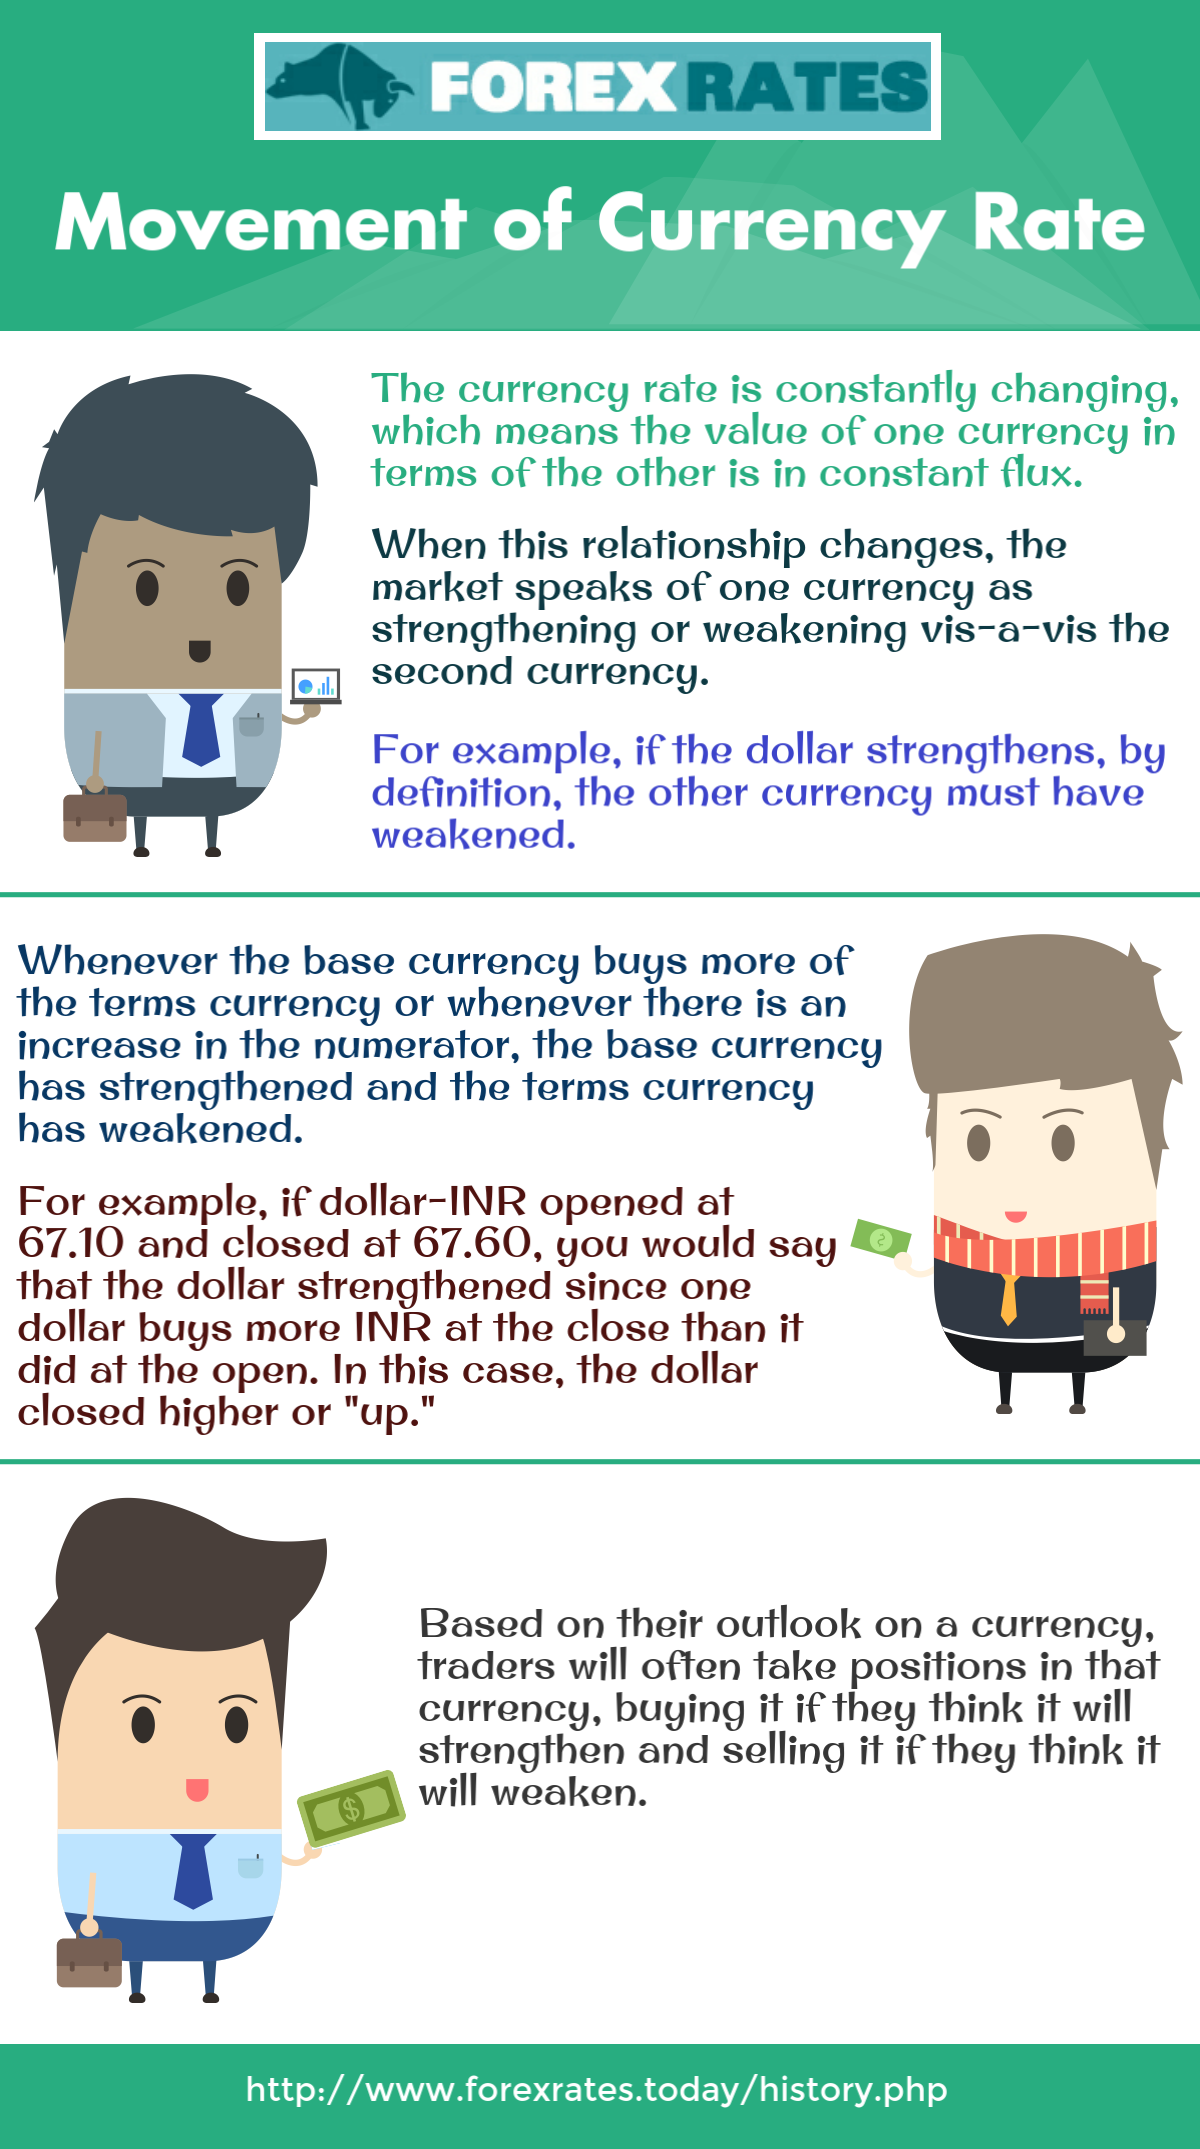 Currency Rate Is Constantly Changing